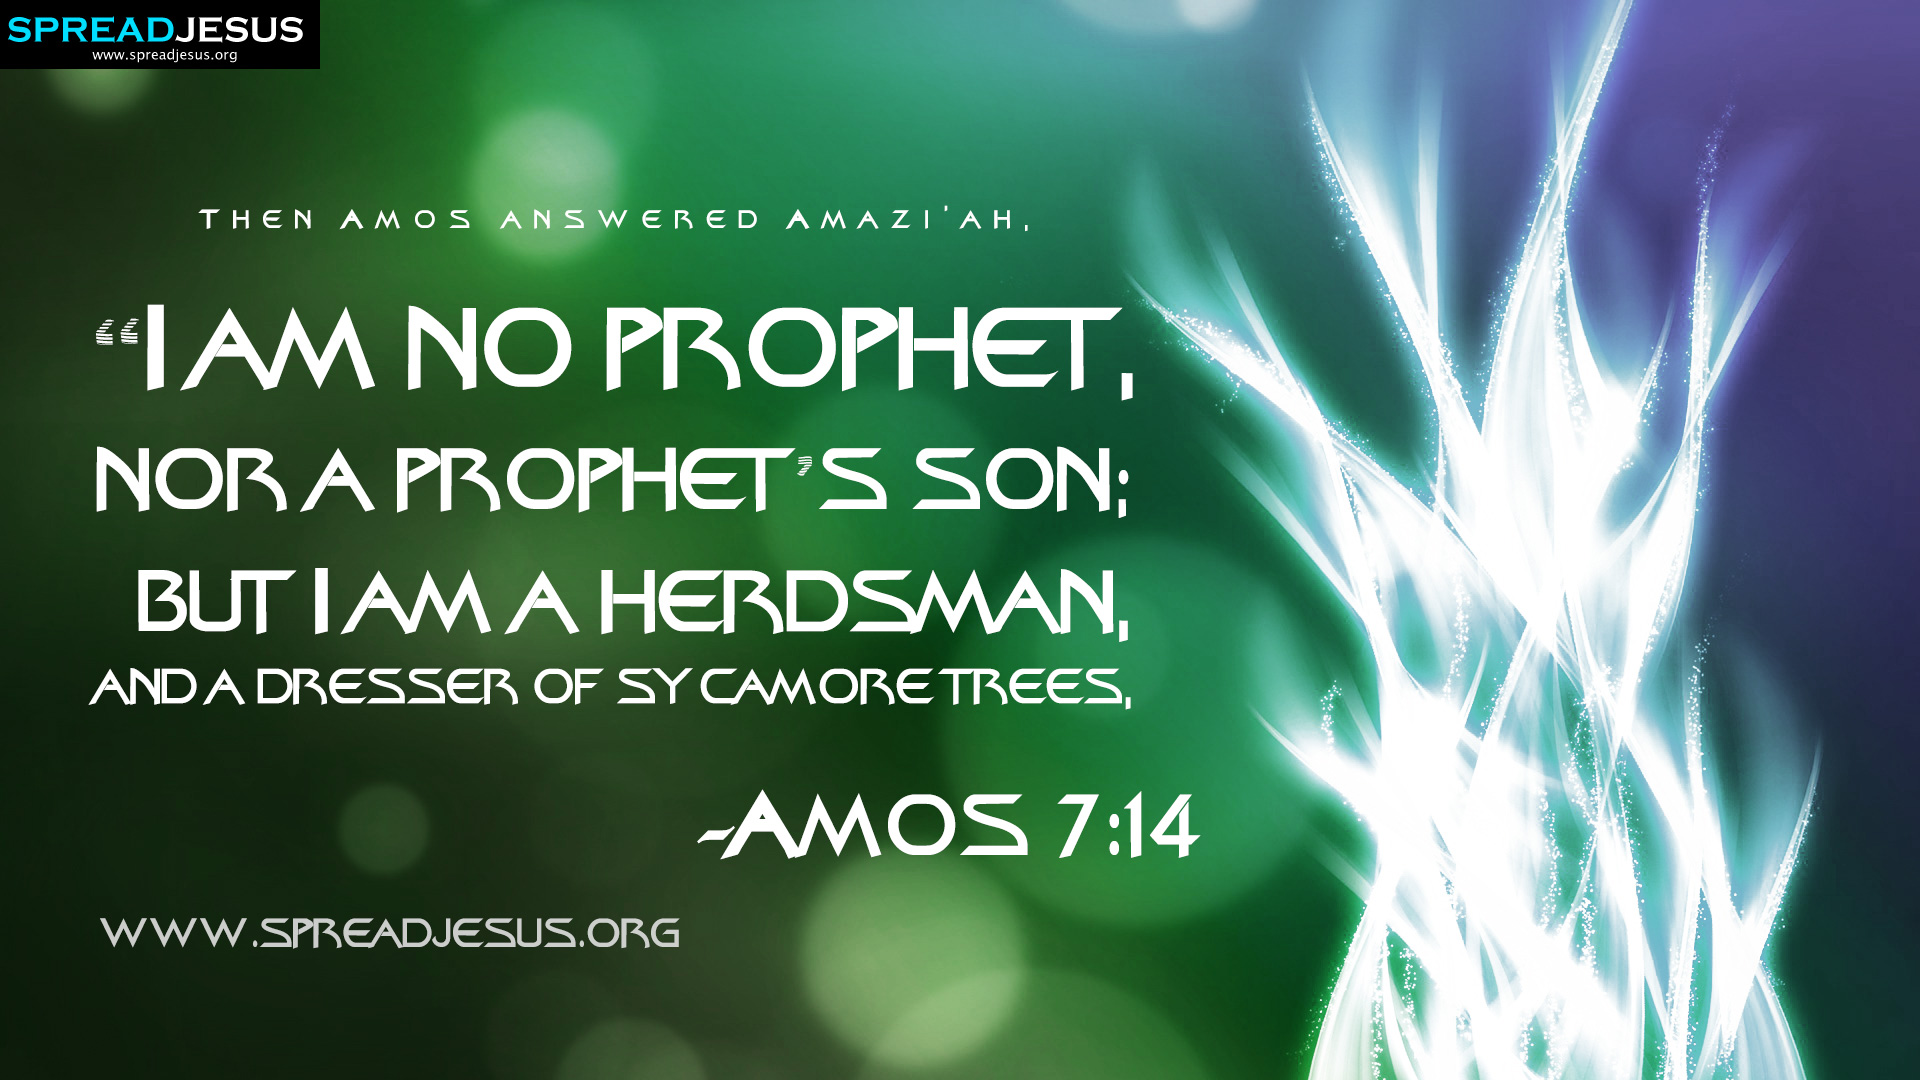 amos 7:14 bible quotes hd-wallpapers then amos answered